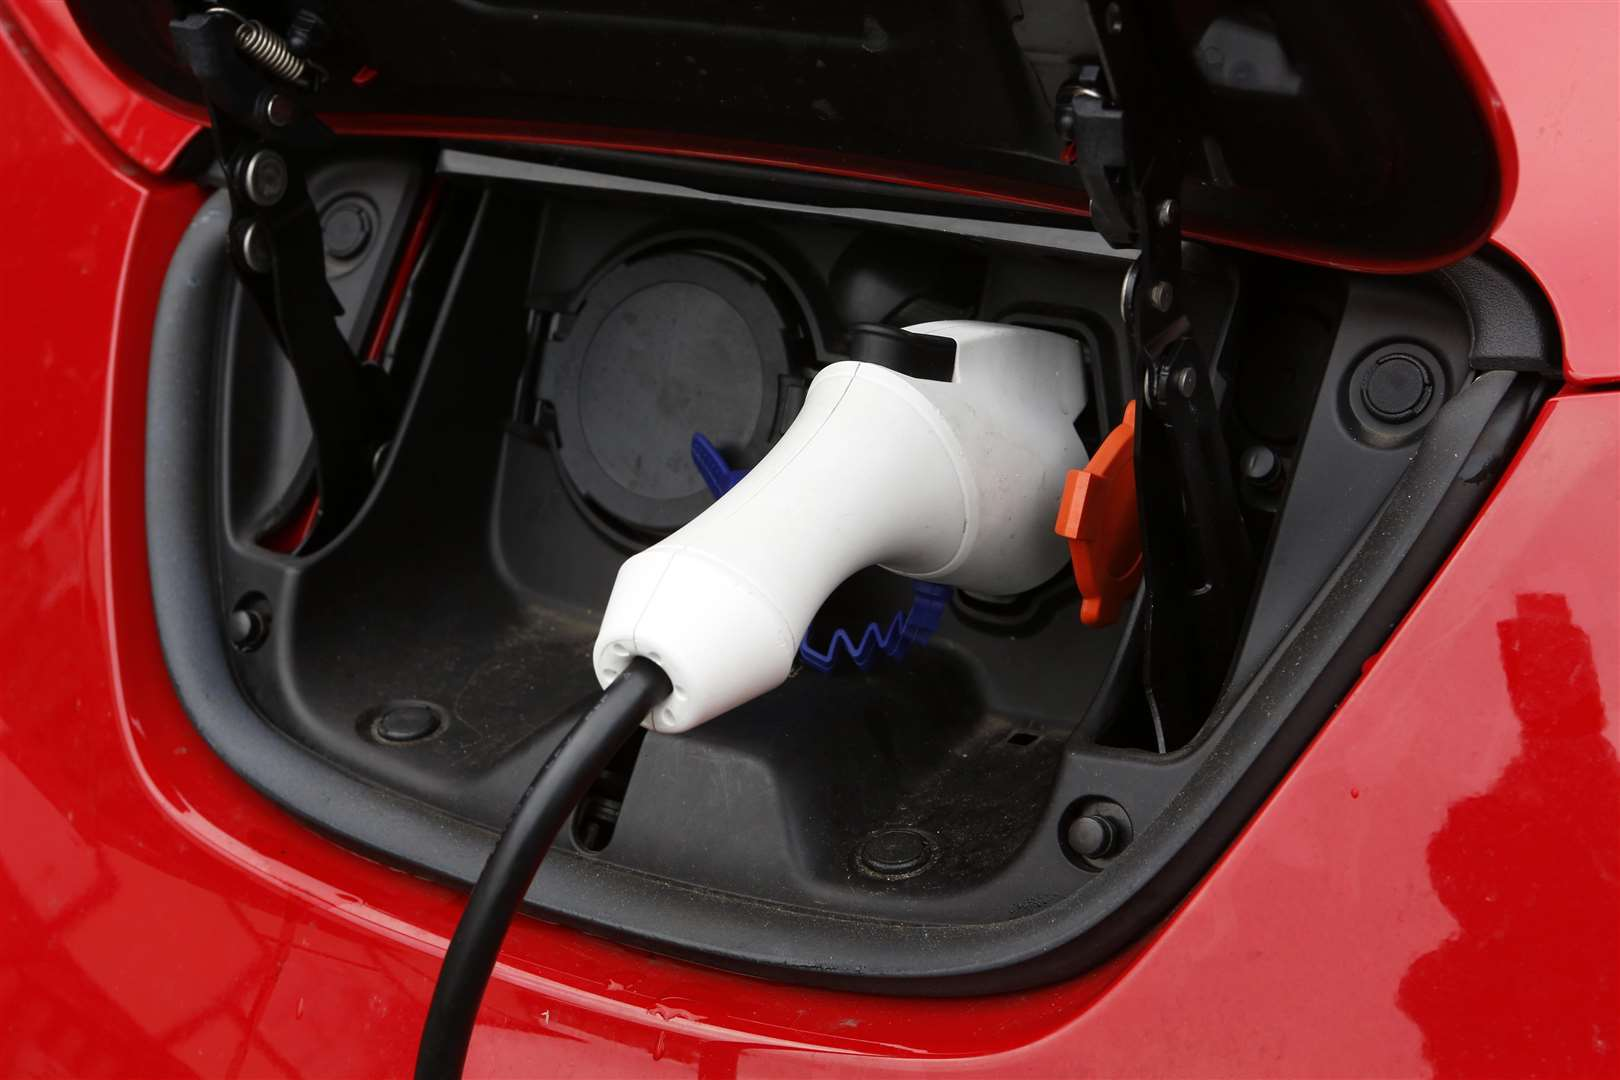 The number of electric vehicles in Canterbury - and across Kent generally - is on the rise